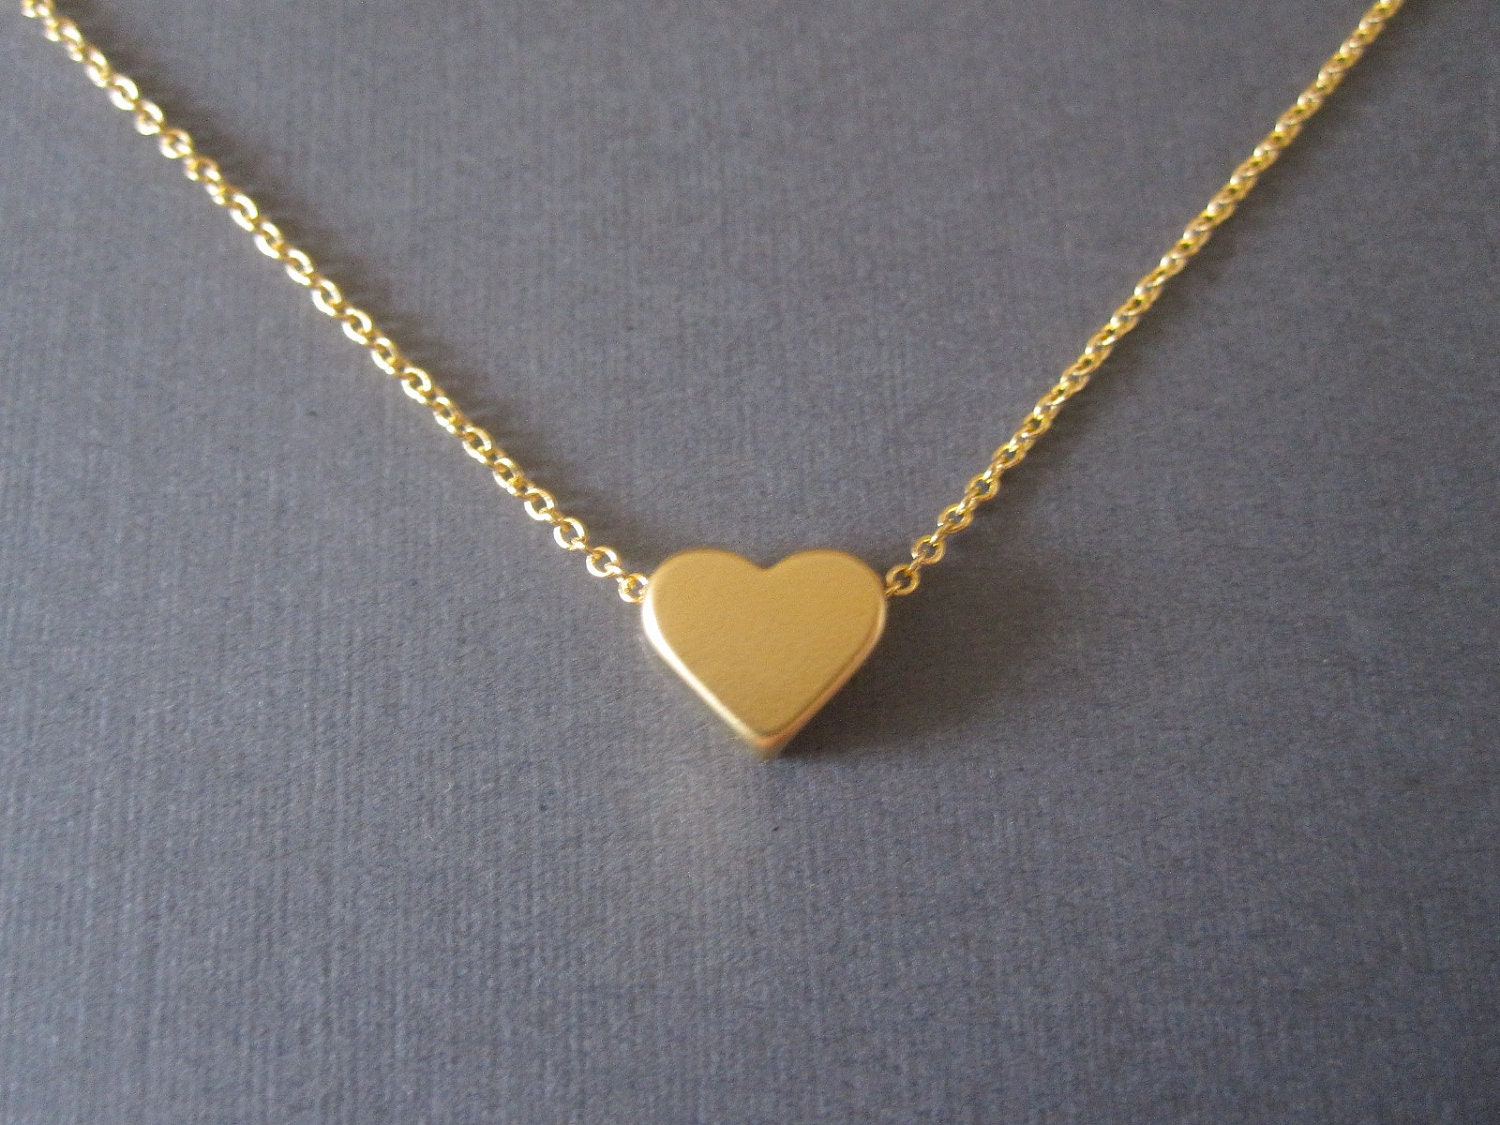 rg products gold loulourose heart necklace dip little rose engravable jewellery littleheartnecklace in tiny